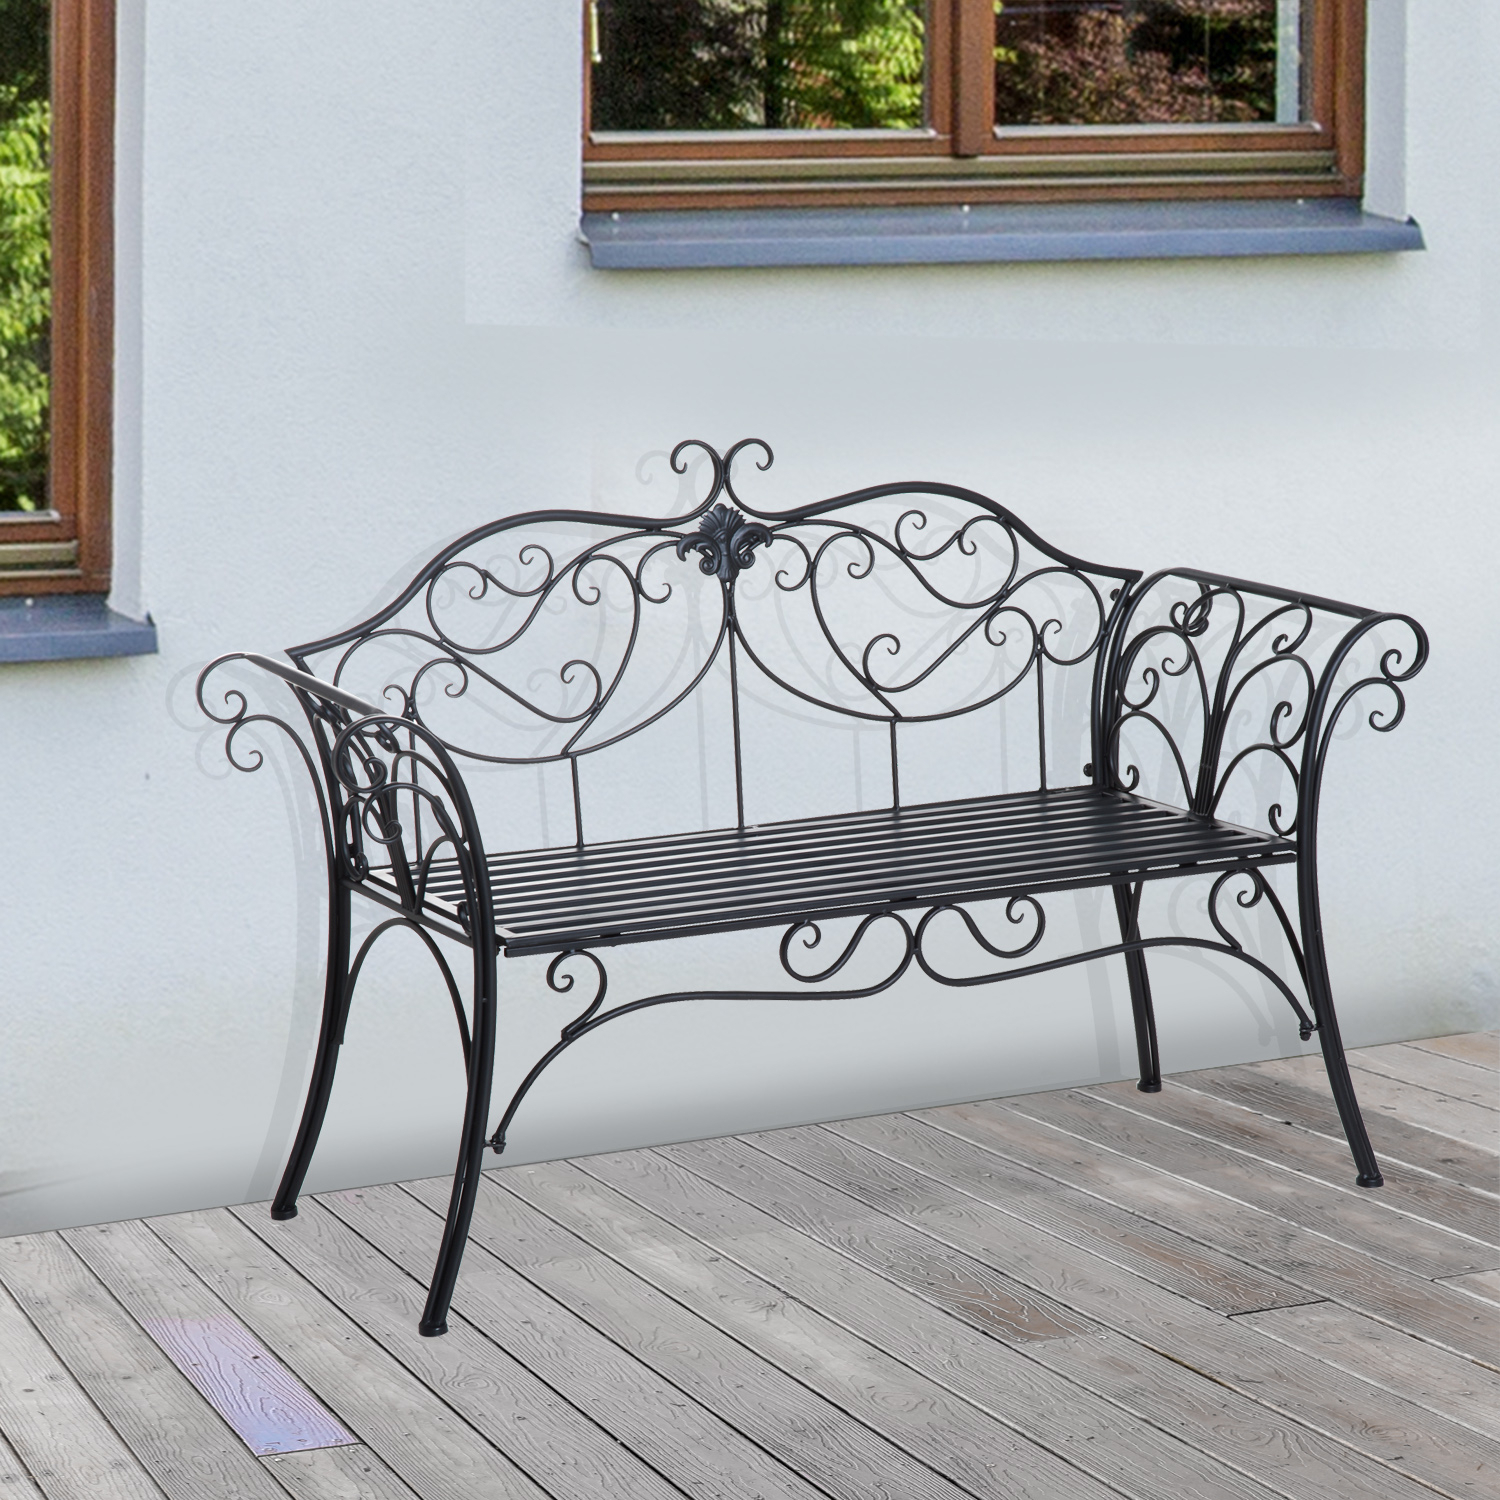 Outsunny Garden Bench Porch Outdoor Seat Chair Backrest Metal Black Park Within Blooming Iron Garden Benches (View 22 of 25)